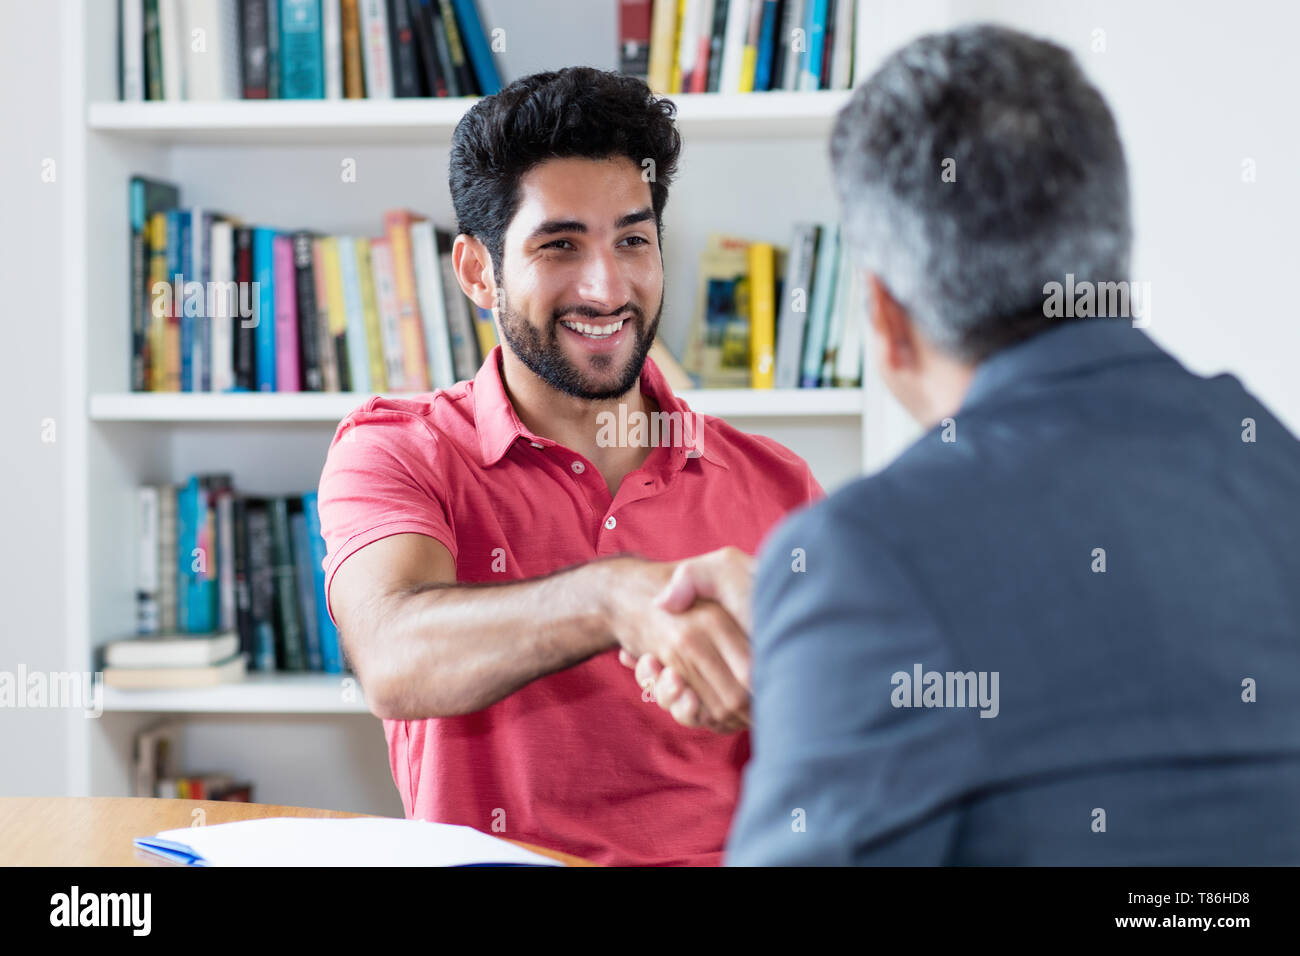 Handshake of latin american male apprentice after job interview with businessman at office - Stock Image